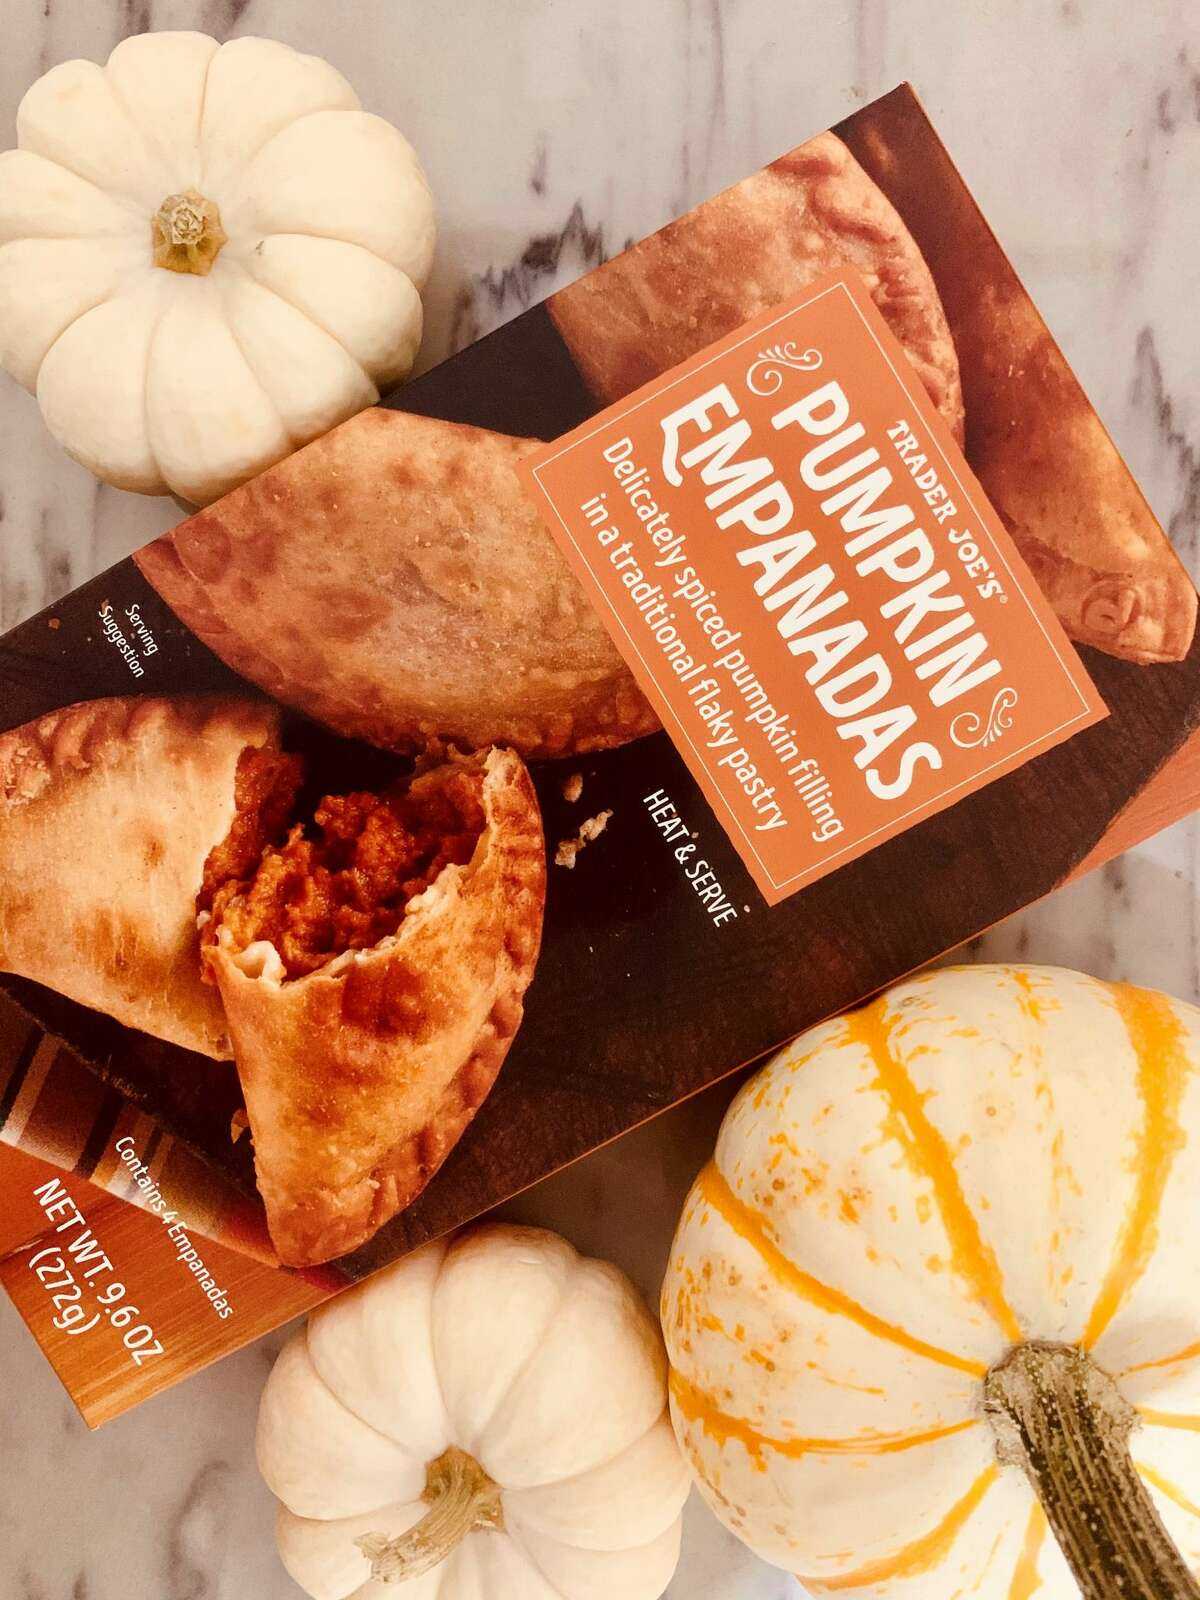 We had high hopes for this Trader Joe's pumpkin newbie, as did many others highly anticipating the release of these pumpkin-stuffed pockets given we've rarely uncovered a pumpkin empanada. Now, we understand why. While an interesting take on pumpkin, maybe curiosity got the best of us on this one. After baking, the soggy breaded layer didn't give us that,